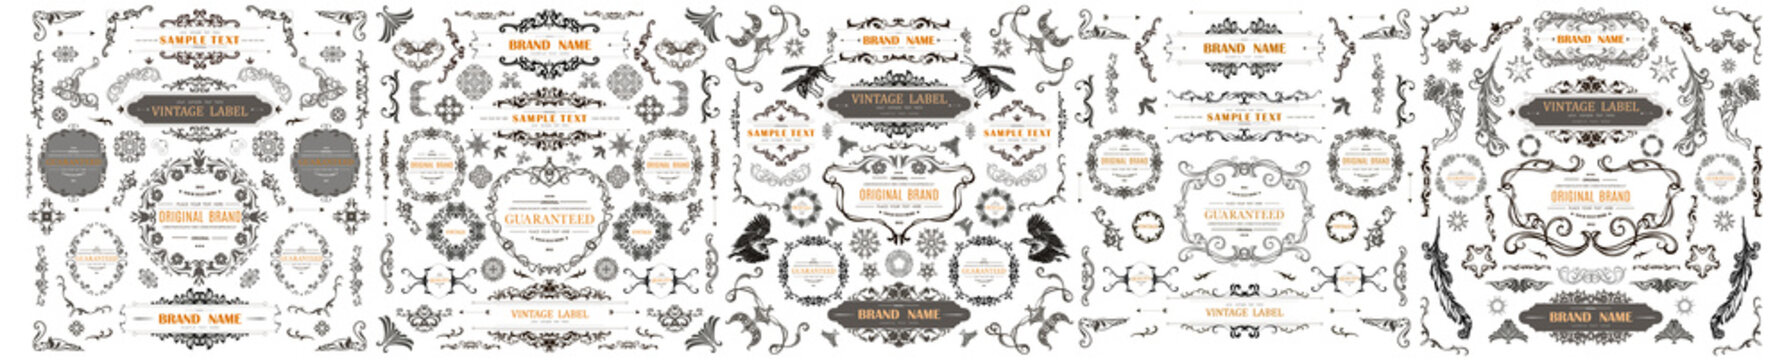 Set of Vintage Decorations Elements. Flourishes Calligraphic Ornaments and Frames with place for your text. Decorative swirls or scrolls, vintage frames , flourishes, labels and dividers. Retro Style